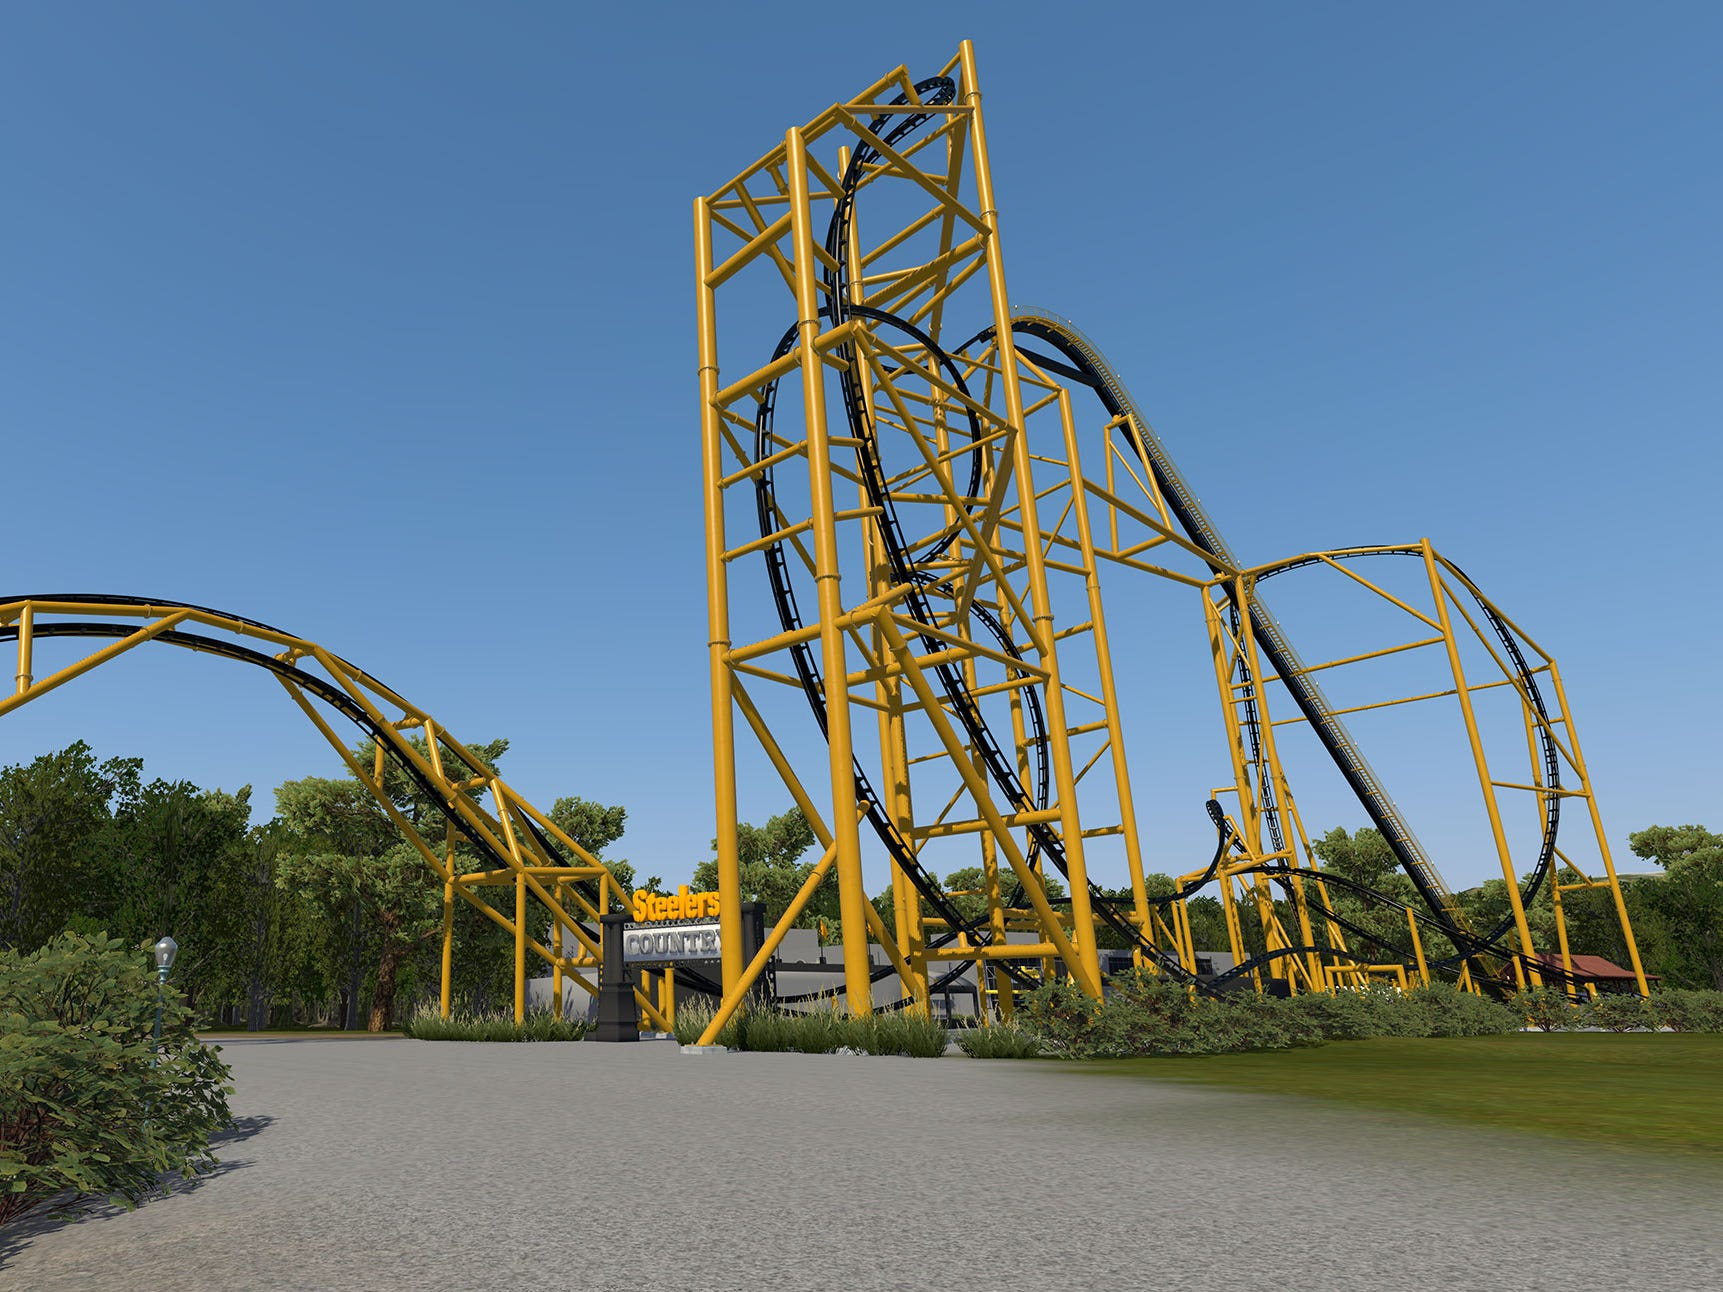 Steel Curtain will open at Kennywood in 2019.